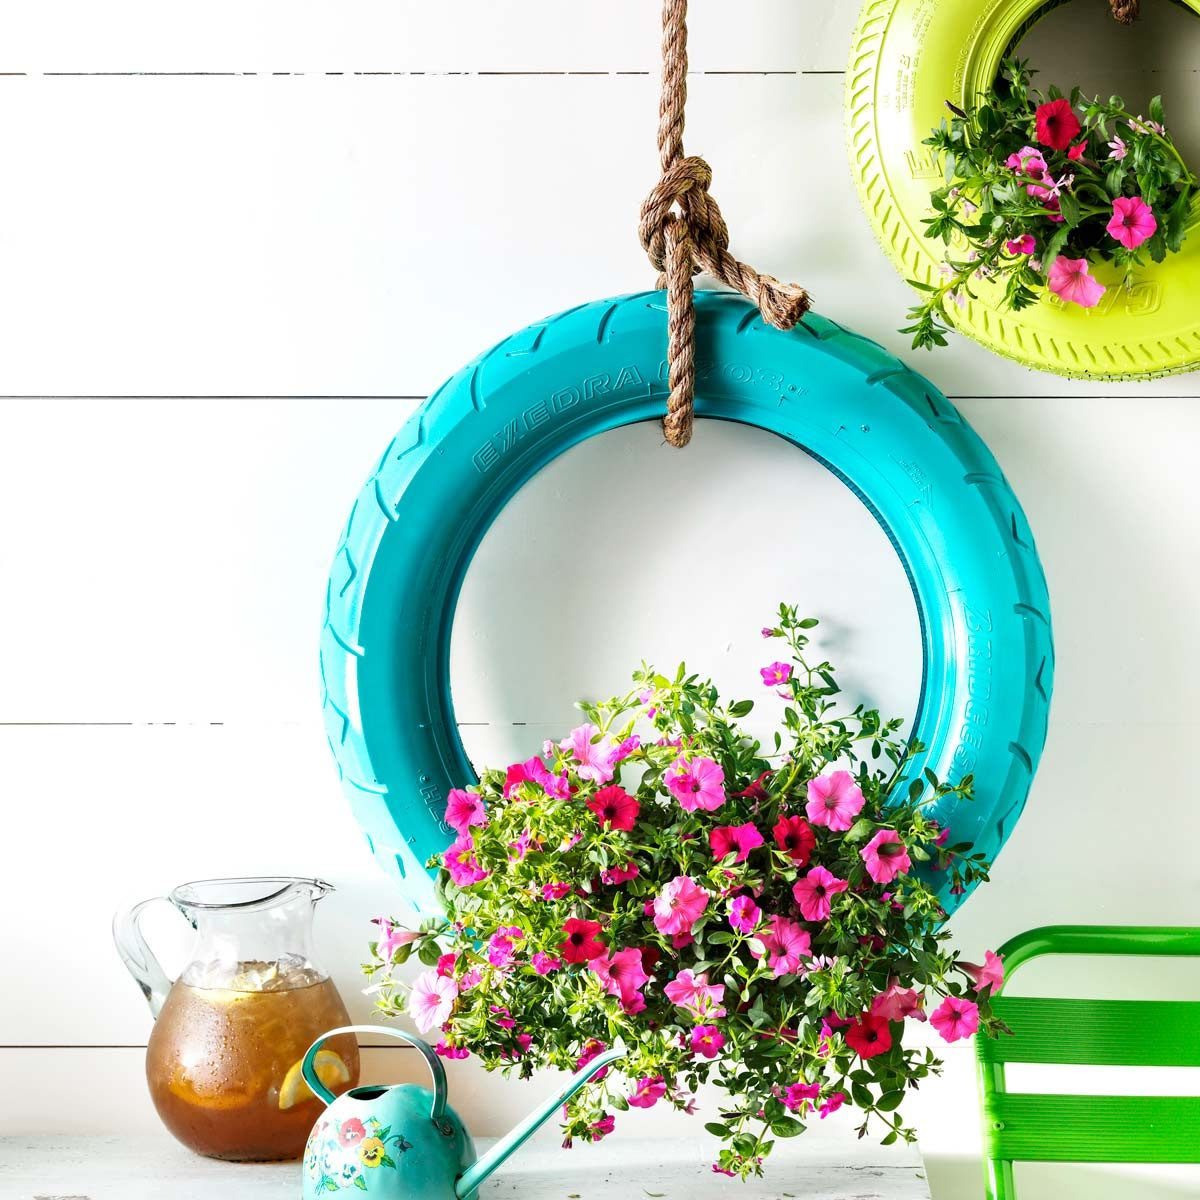 How To Turn An Old Tire Into A Hanging Planter Family Handyman